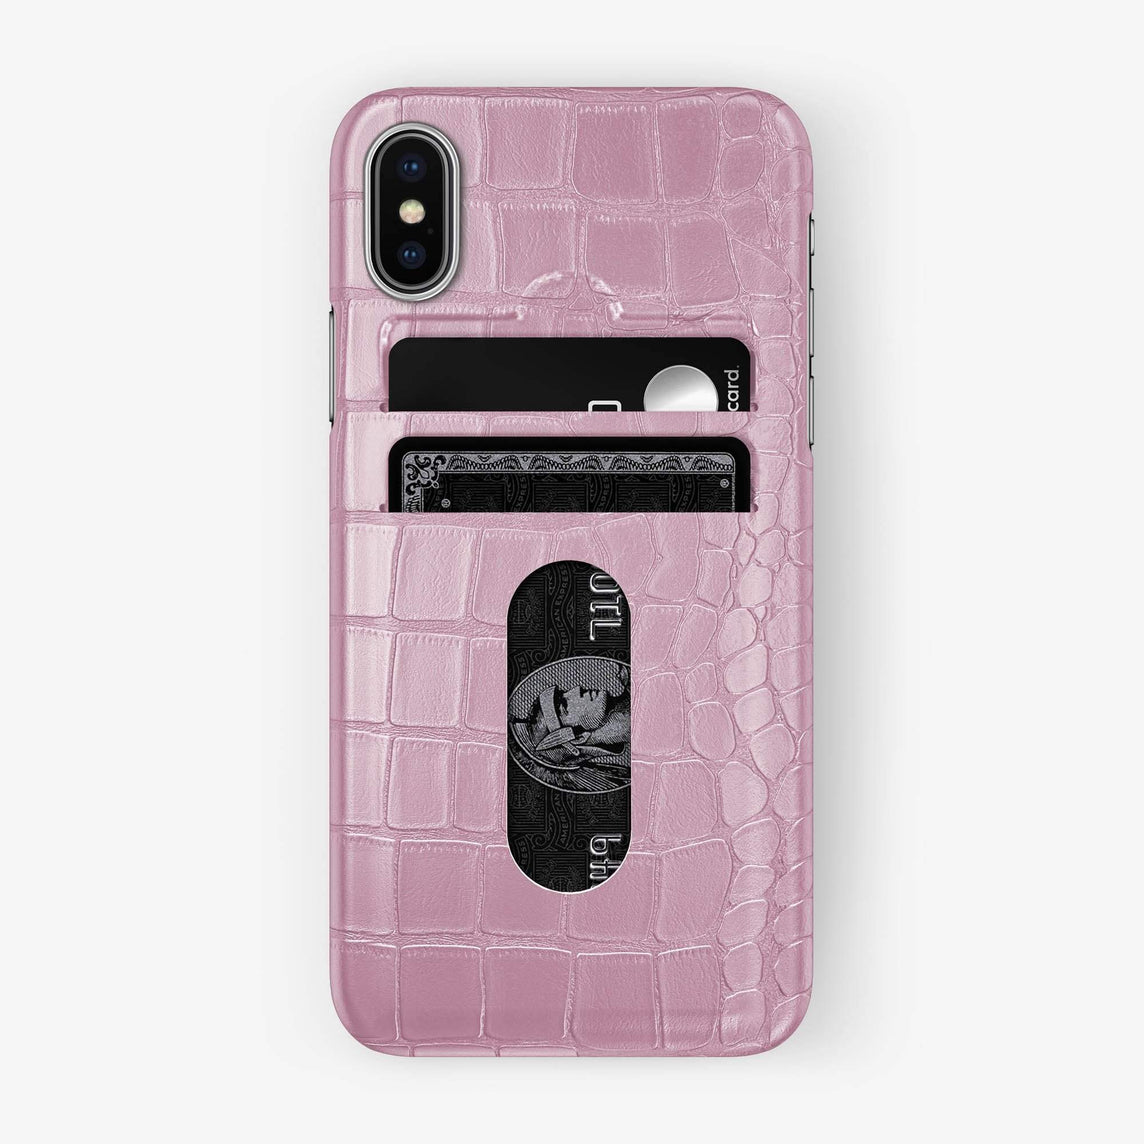 Alligator Card Holder Case iPhone Xs Max | Pink - Stainless Steel - Hadoro